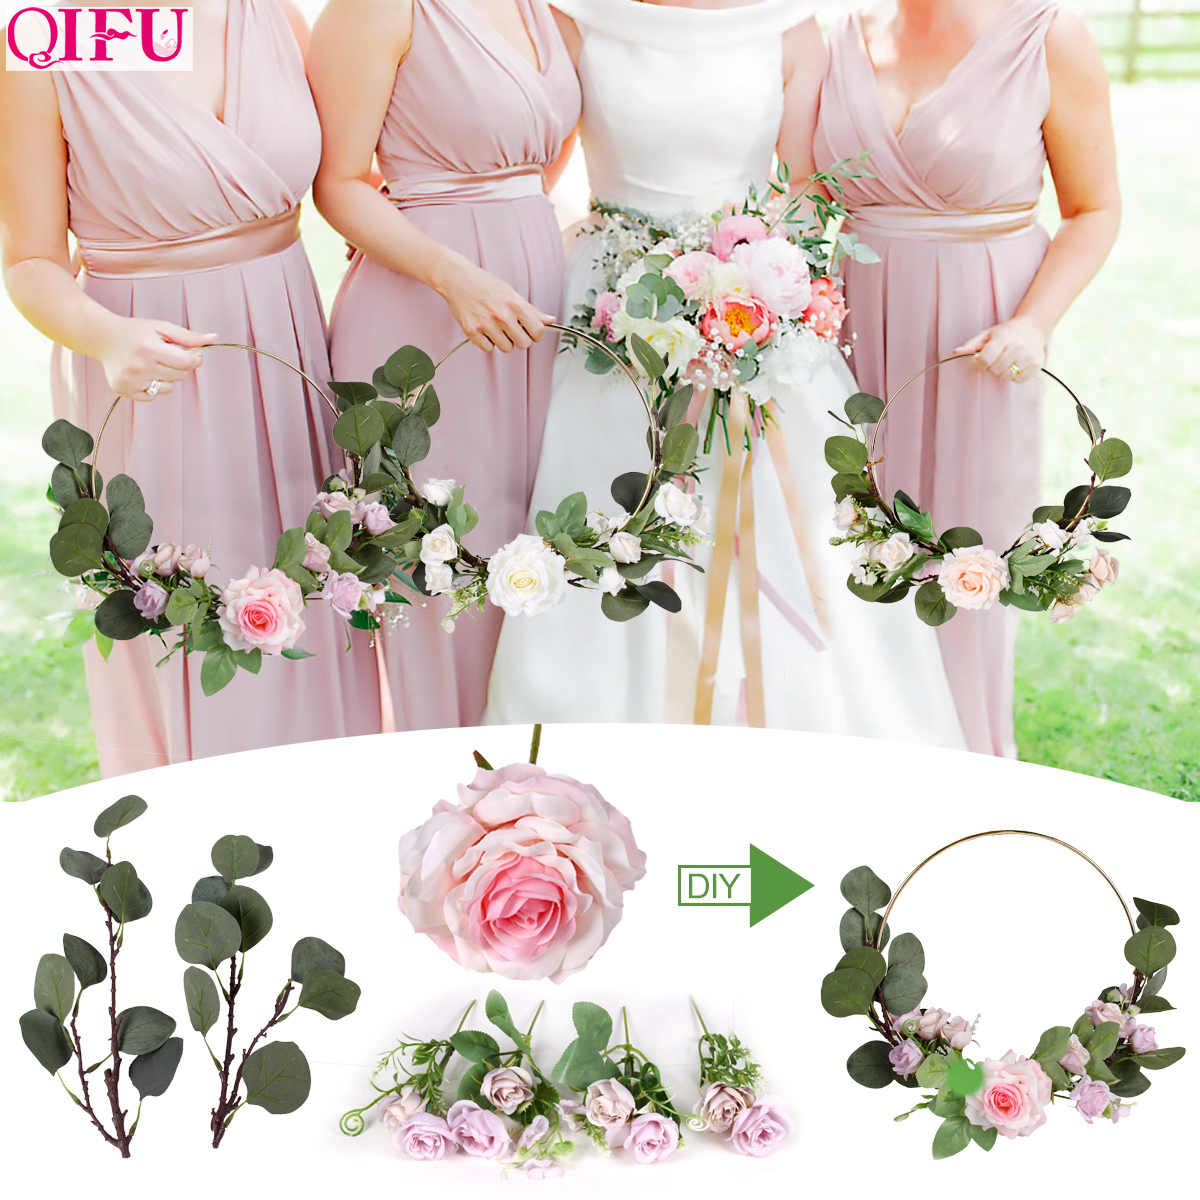 QIFU Metal Ring Wreath And Artificial Flower Wedding Door Hanging Decor Bridesmaid Handheld Garland Hawaiian Party Supplies